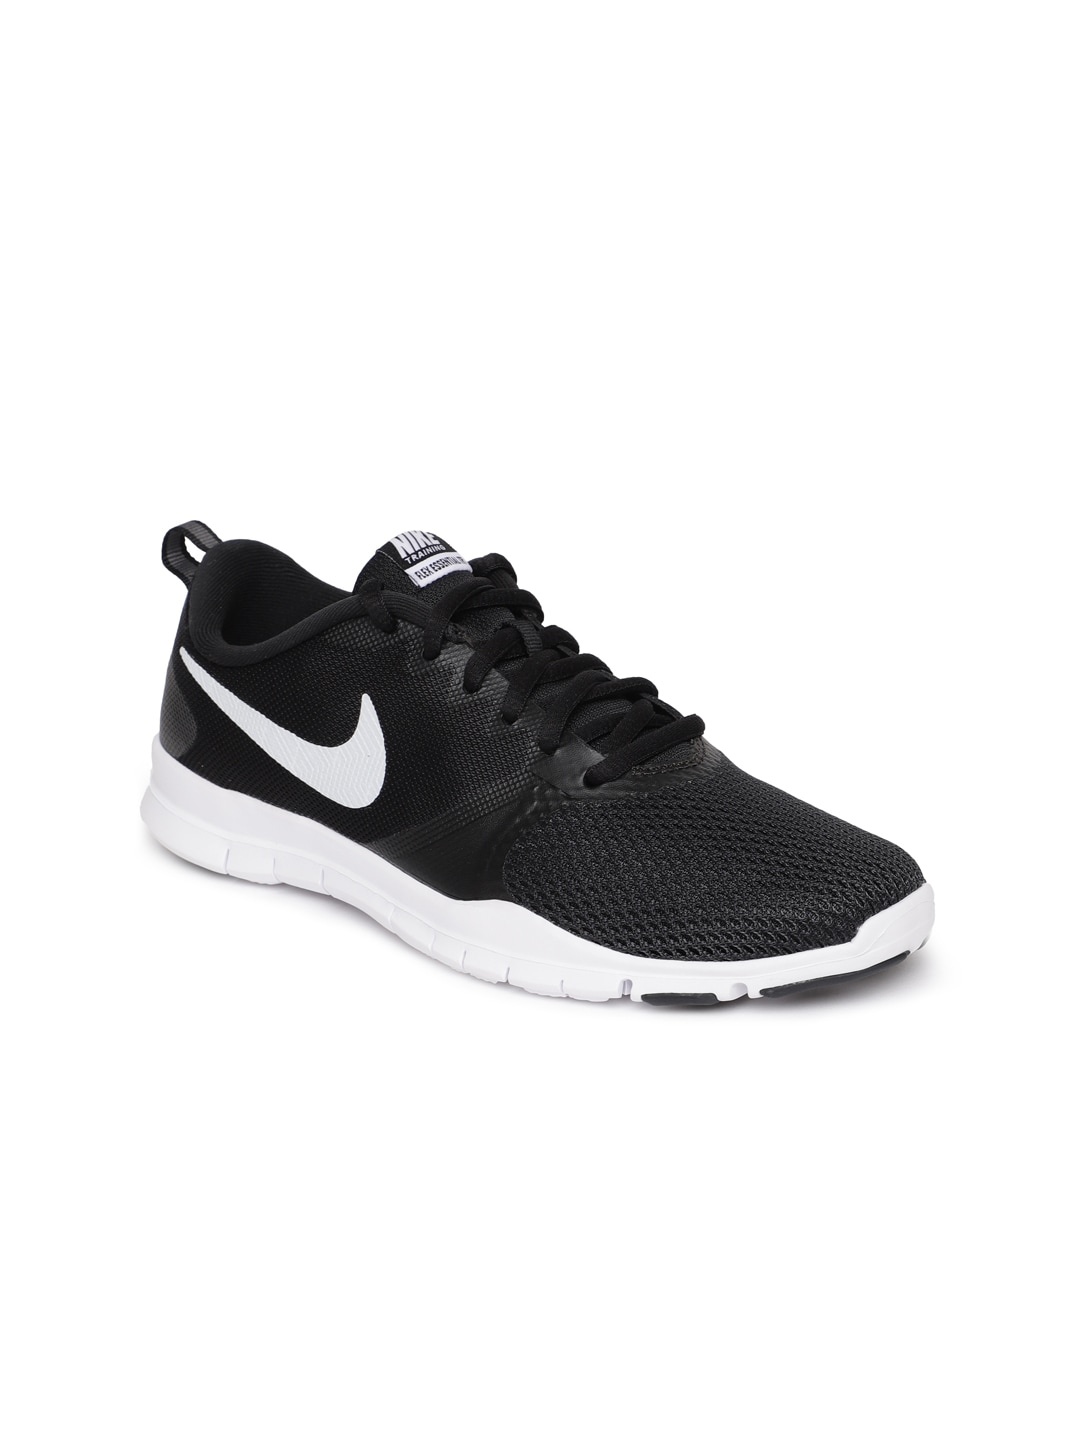 a16e2823781eb Nike Training Shoes Women - Buy Nike Training Shoes Women online in India